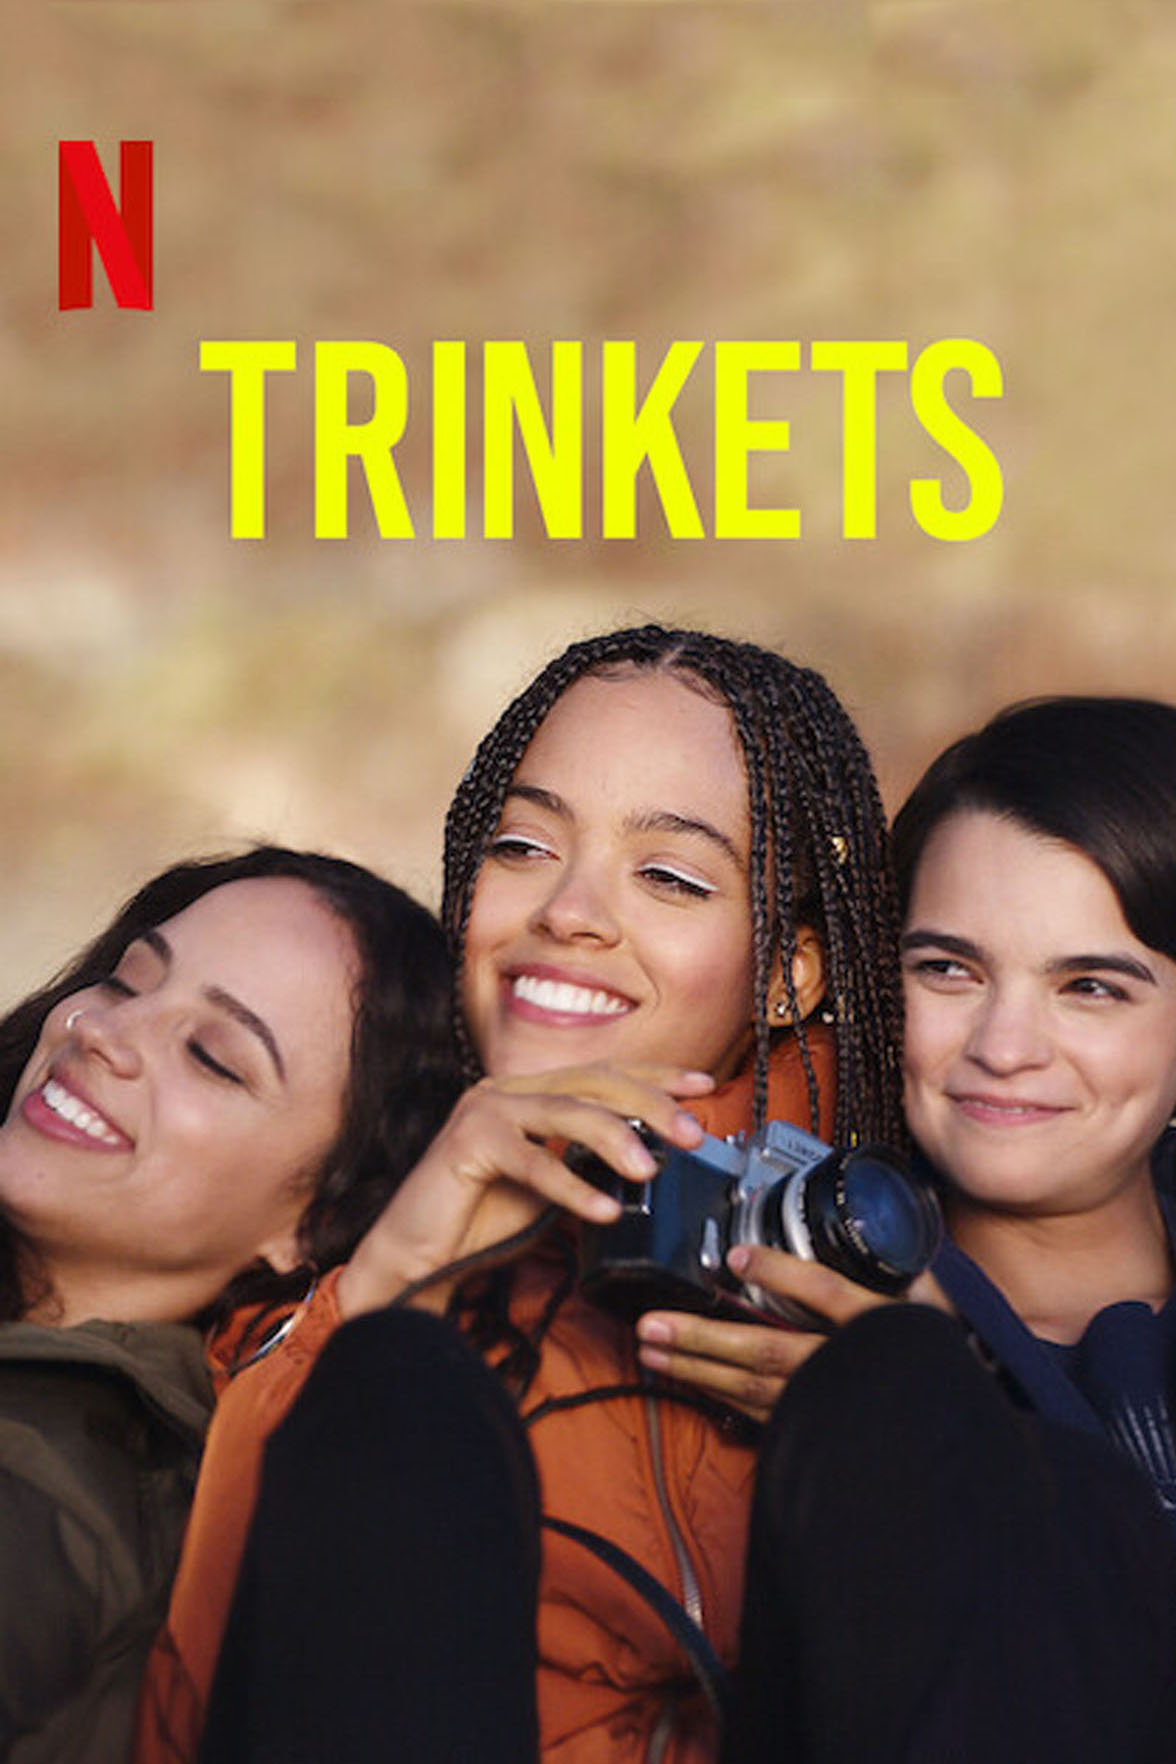 Trinkets - Where to Watch and Stream - TV Guide